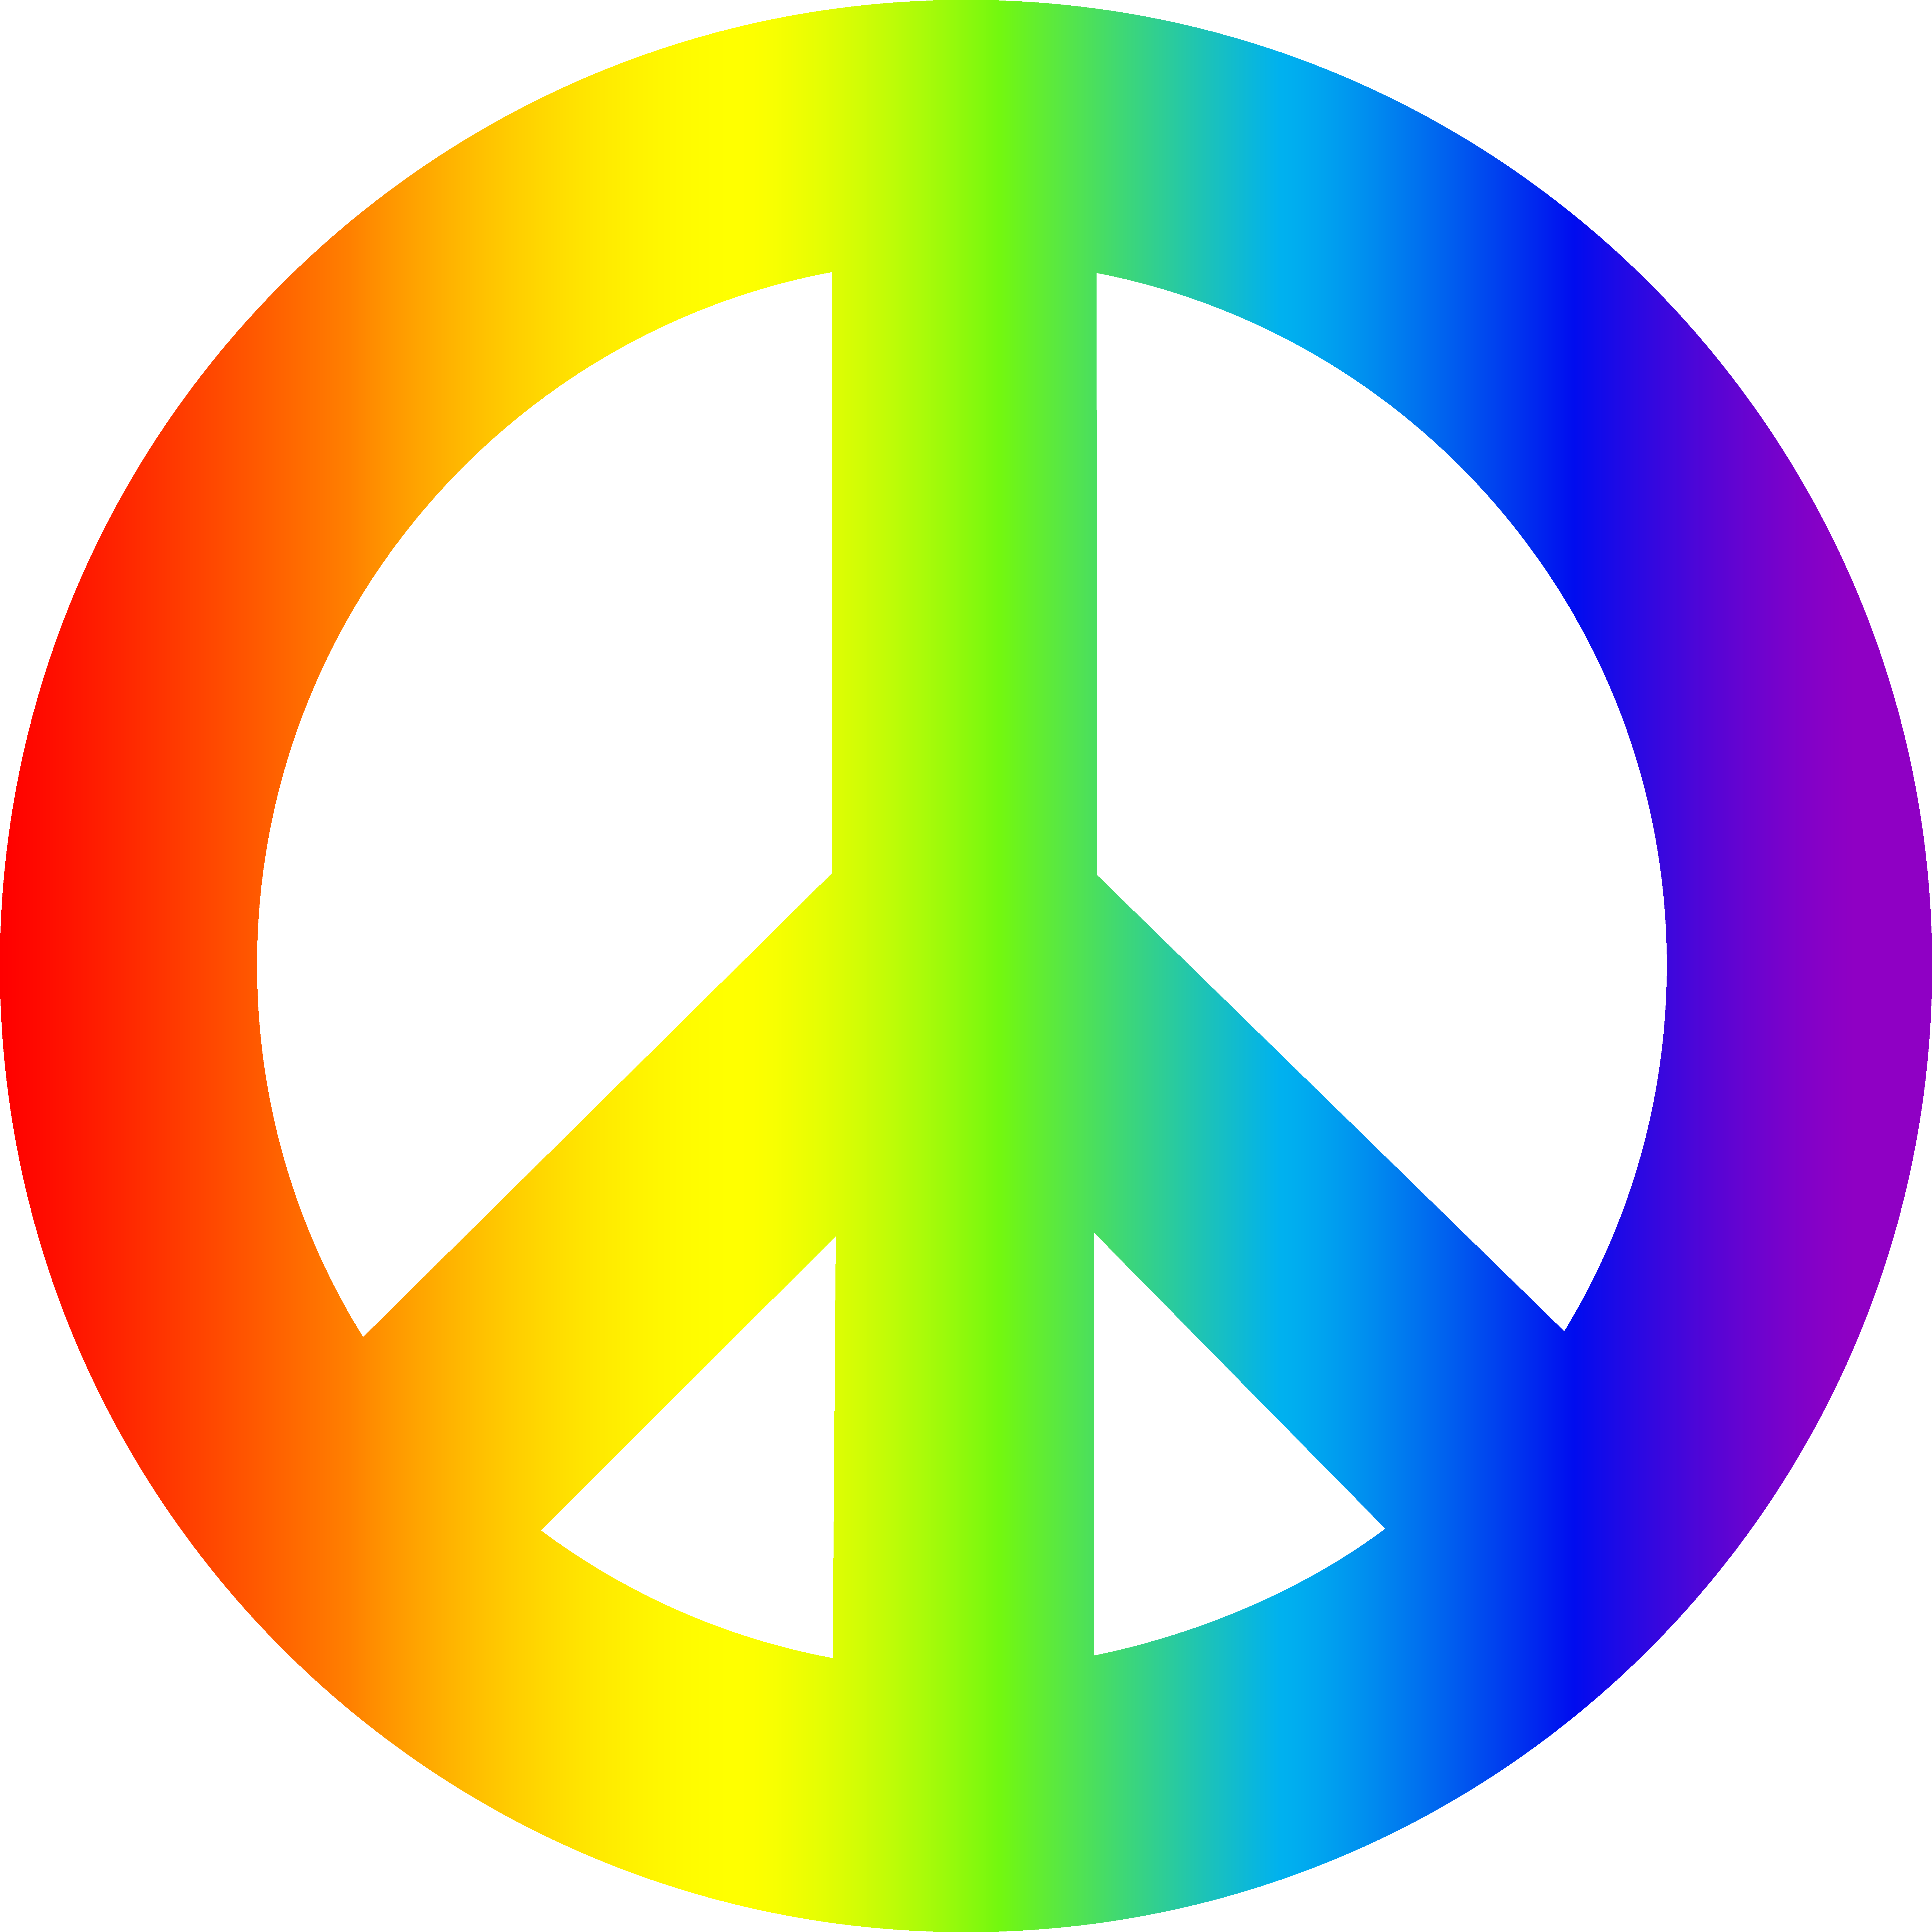 Pictures of peace signs free download best pictures of peace 7192x7192 peace sign clipart peace symbol buycottarizona